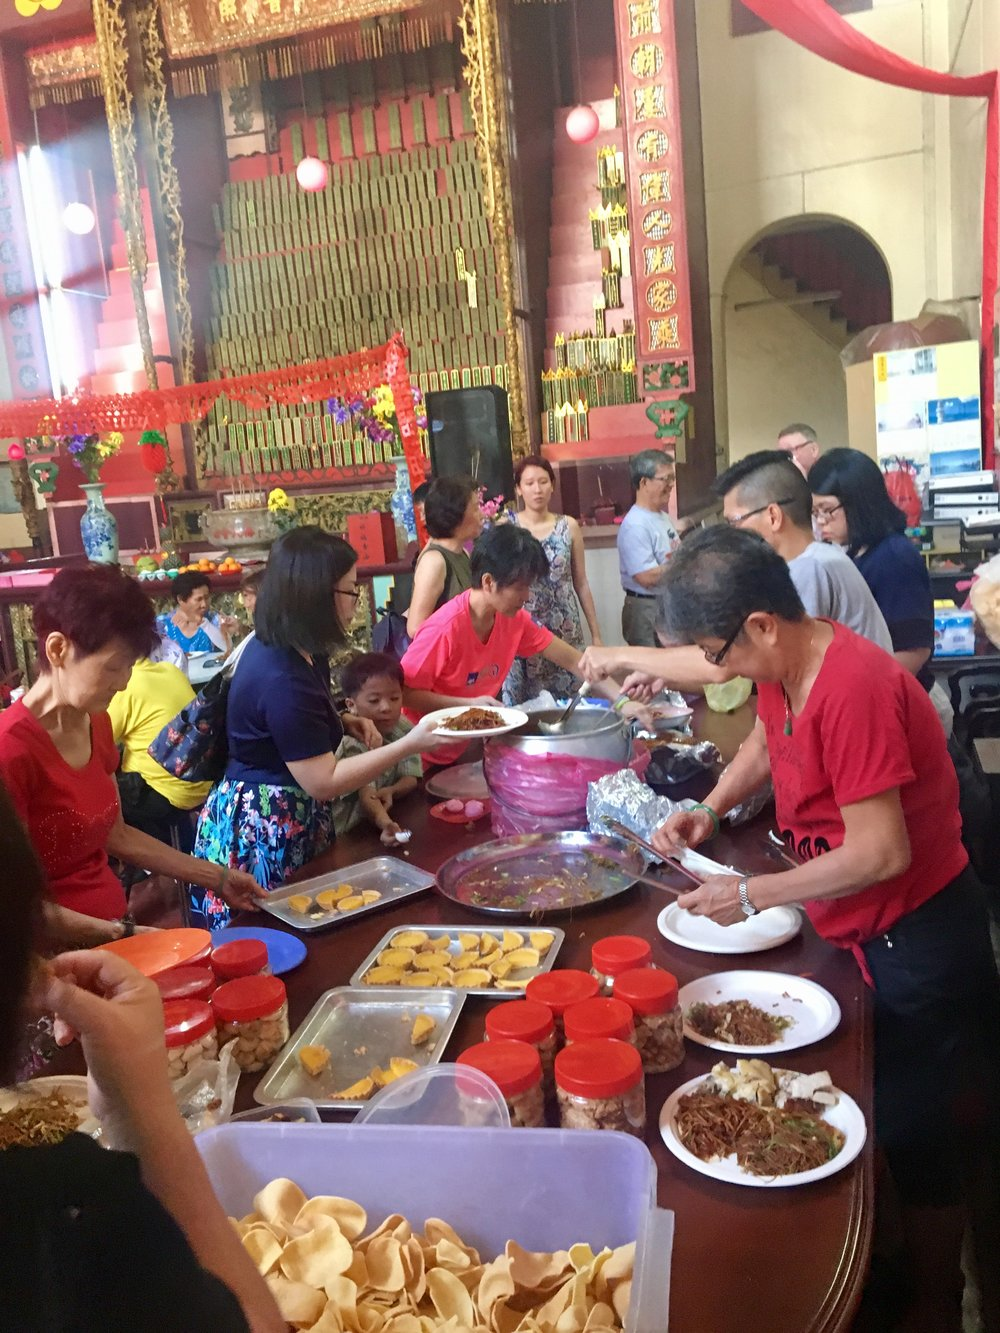 We were invited to stay for food at the Clanhouse to join in the Chinese New year celebrations.